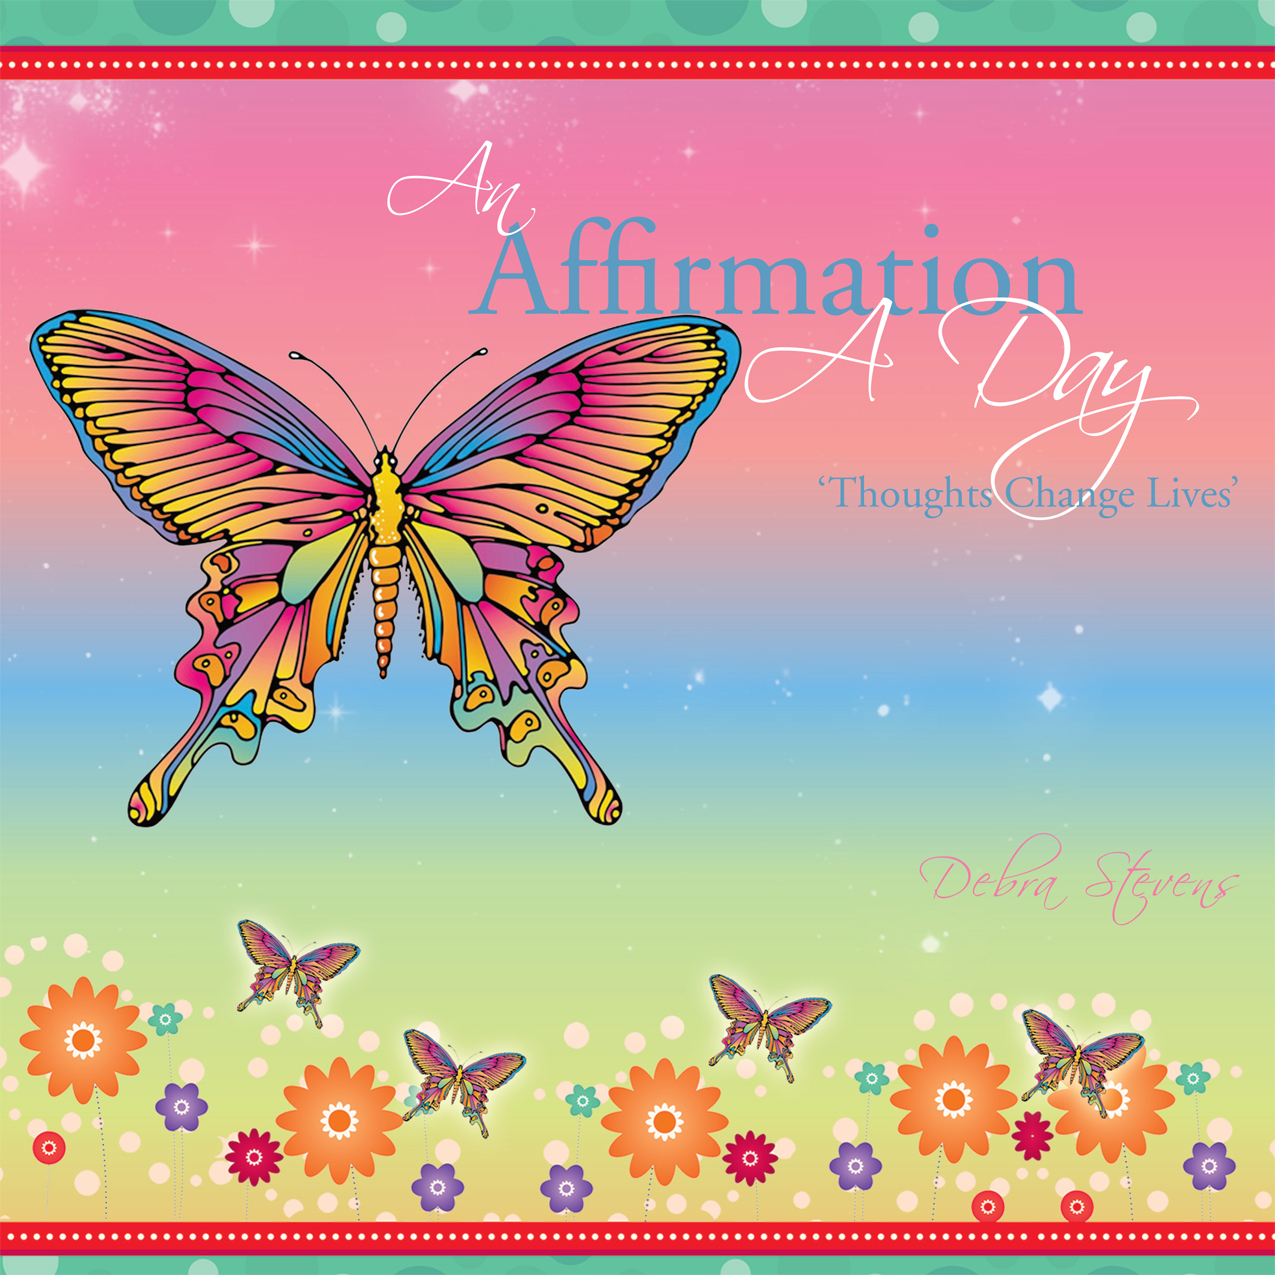 An Affirmation A Day By: Debra Stevens